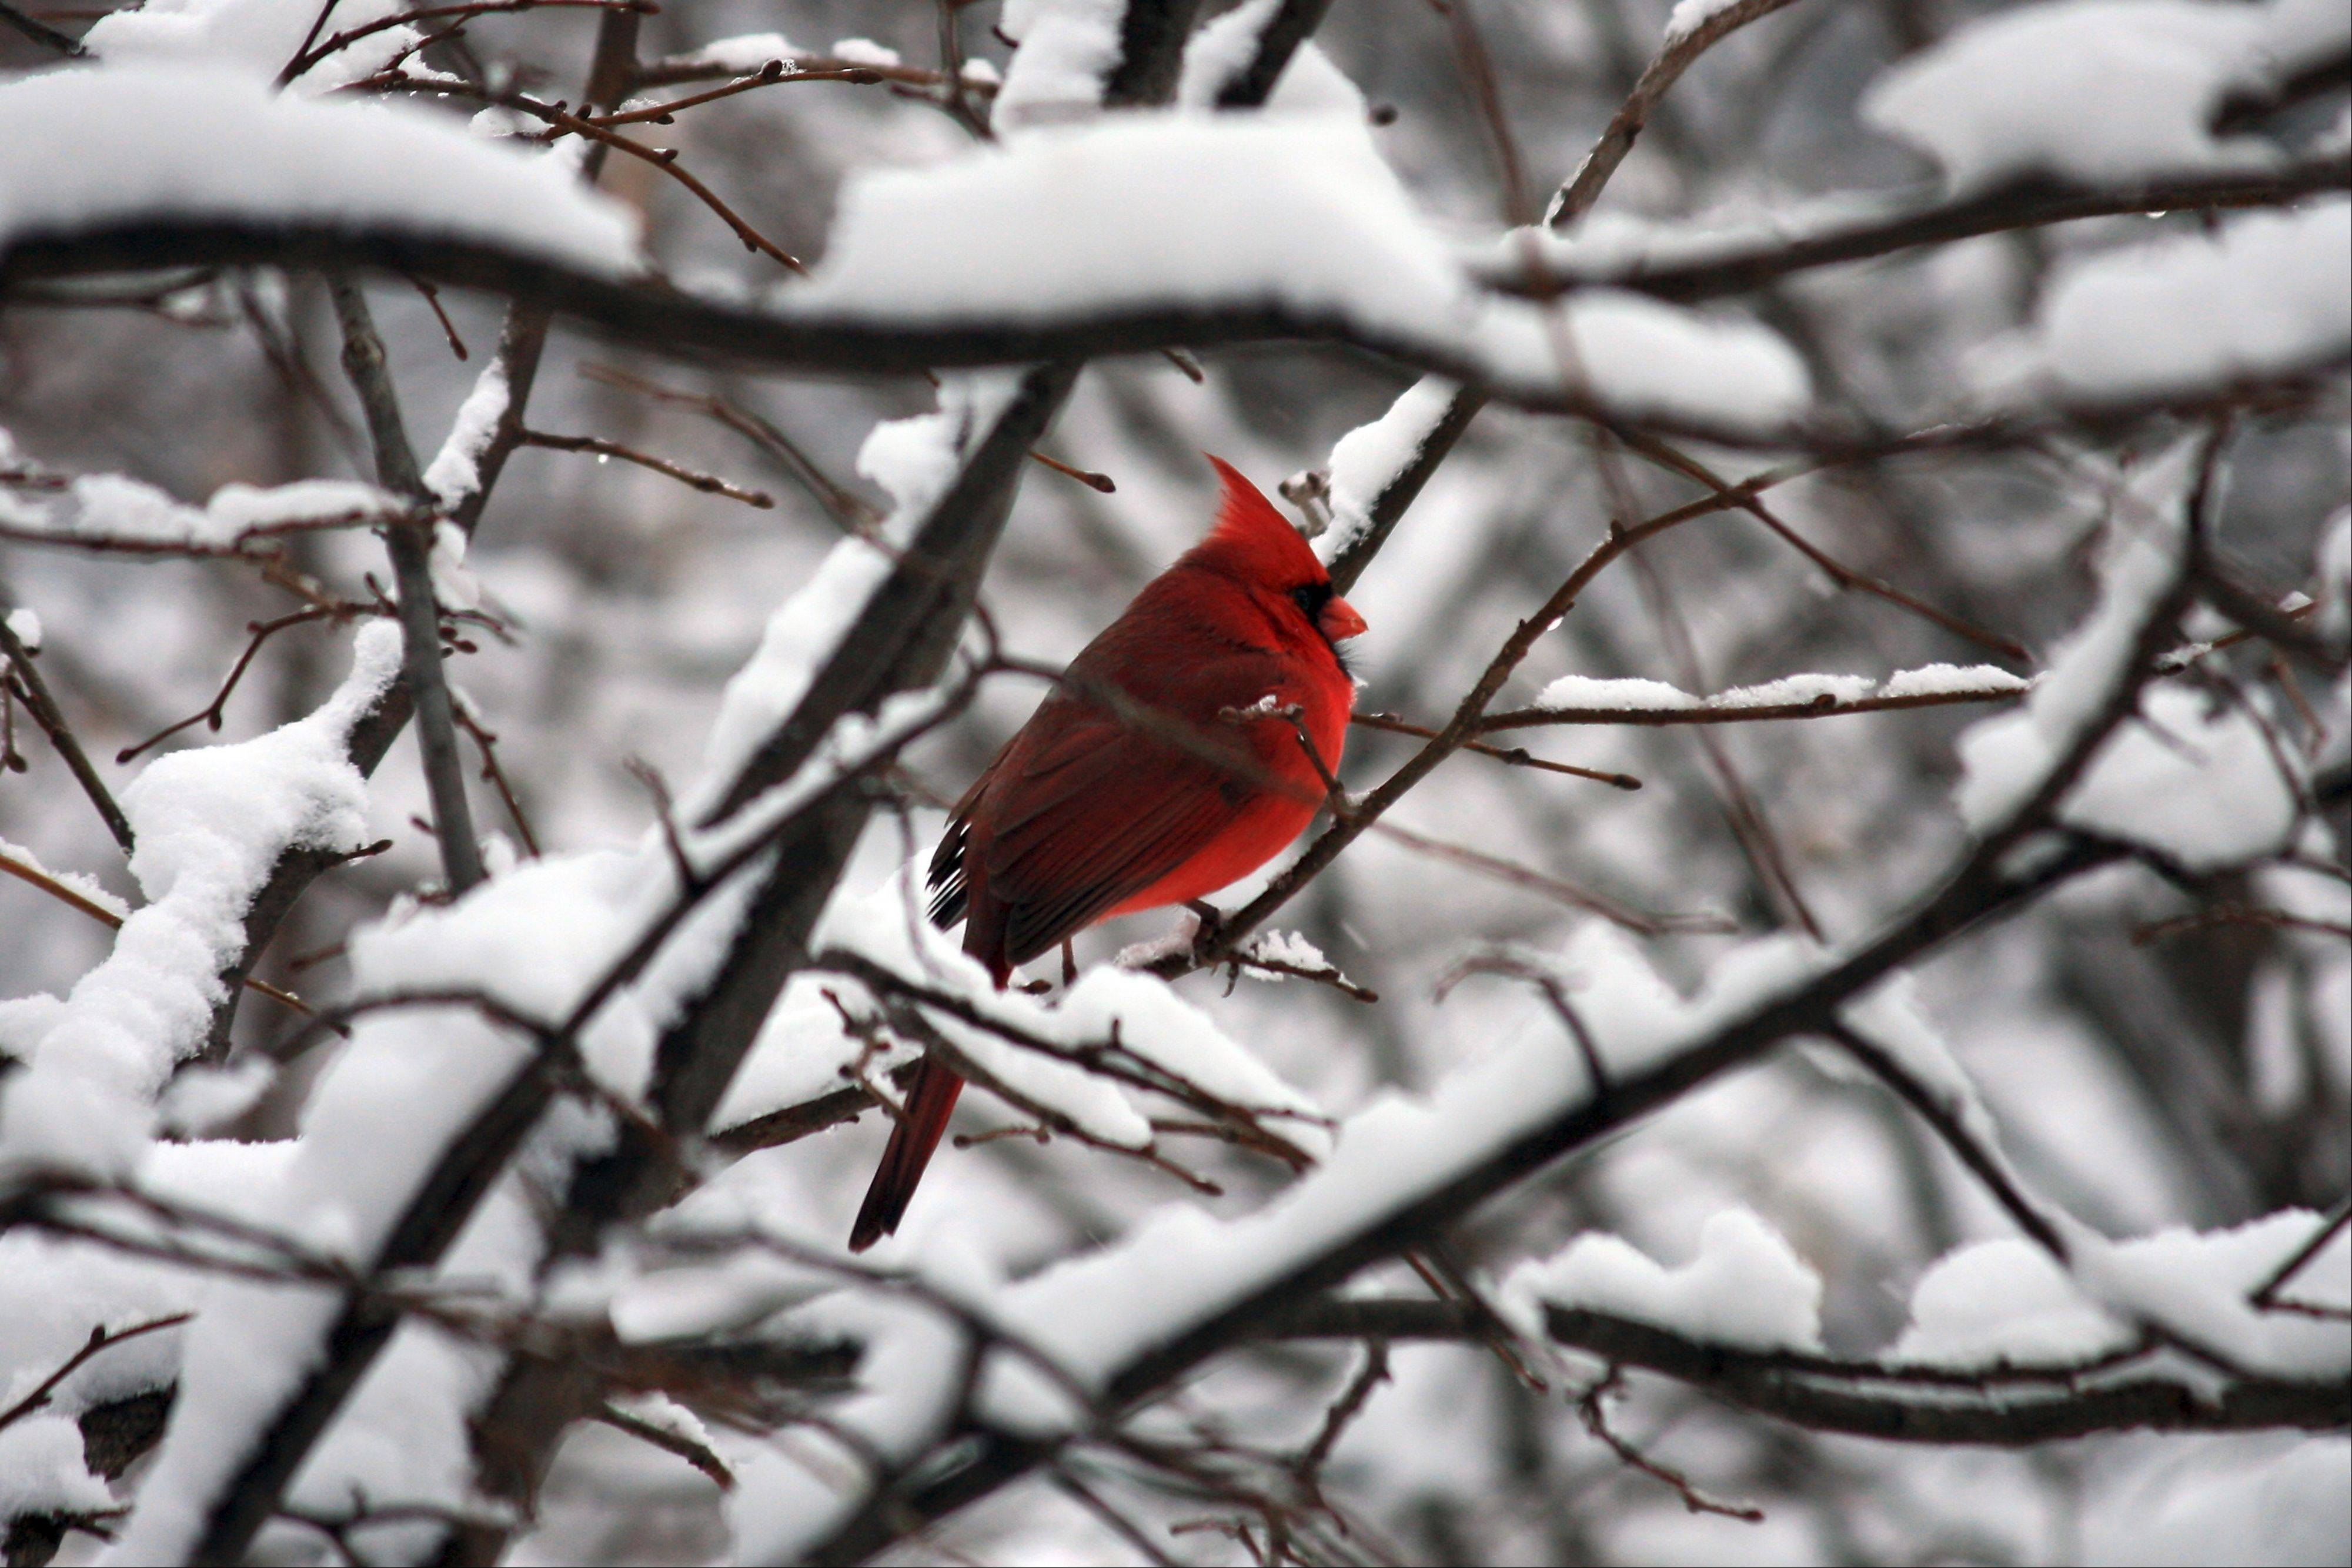 Glen Ellyn resident Leslie Morrison of a colorful male Northern cardinal in snow was voted second most popular by Cantigny visitors.